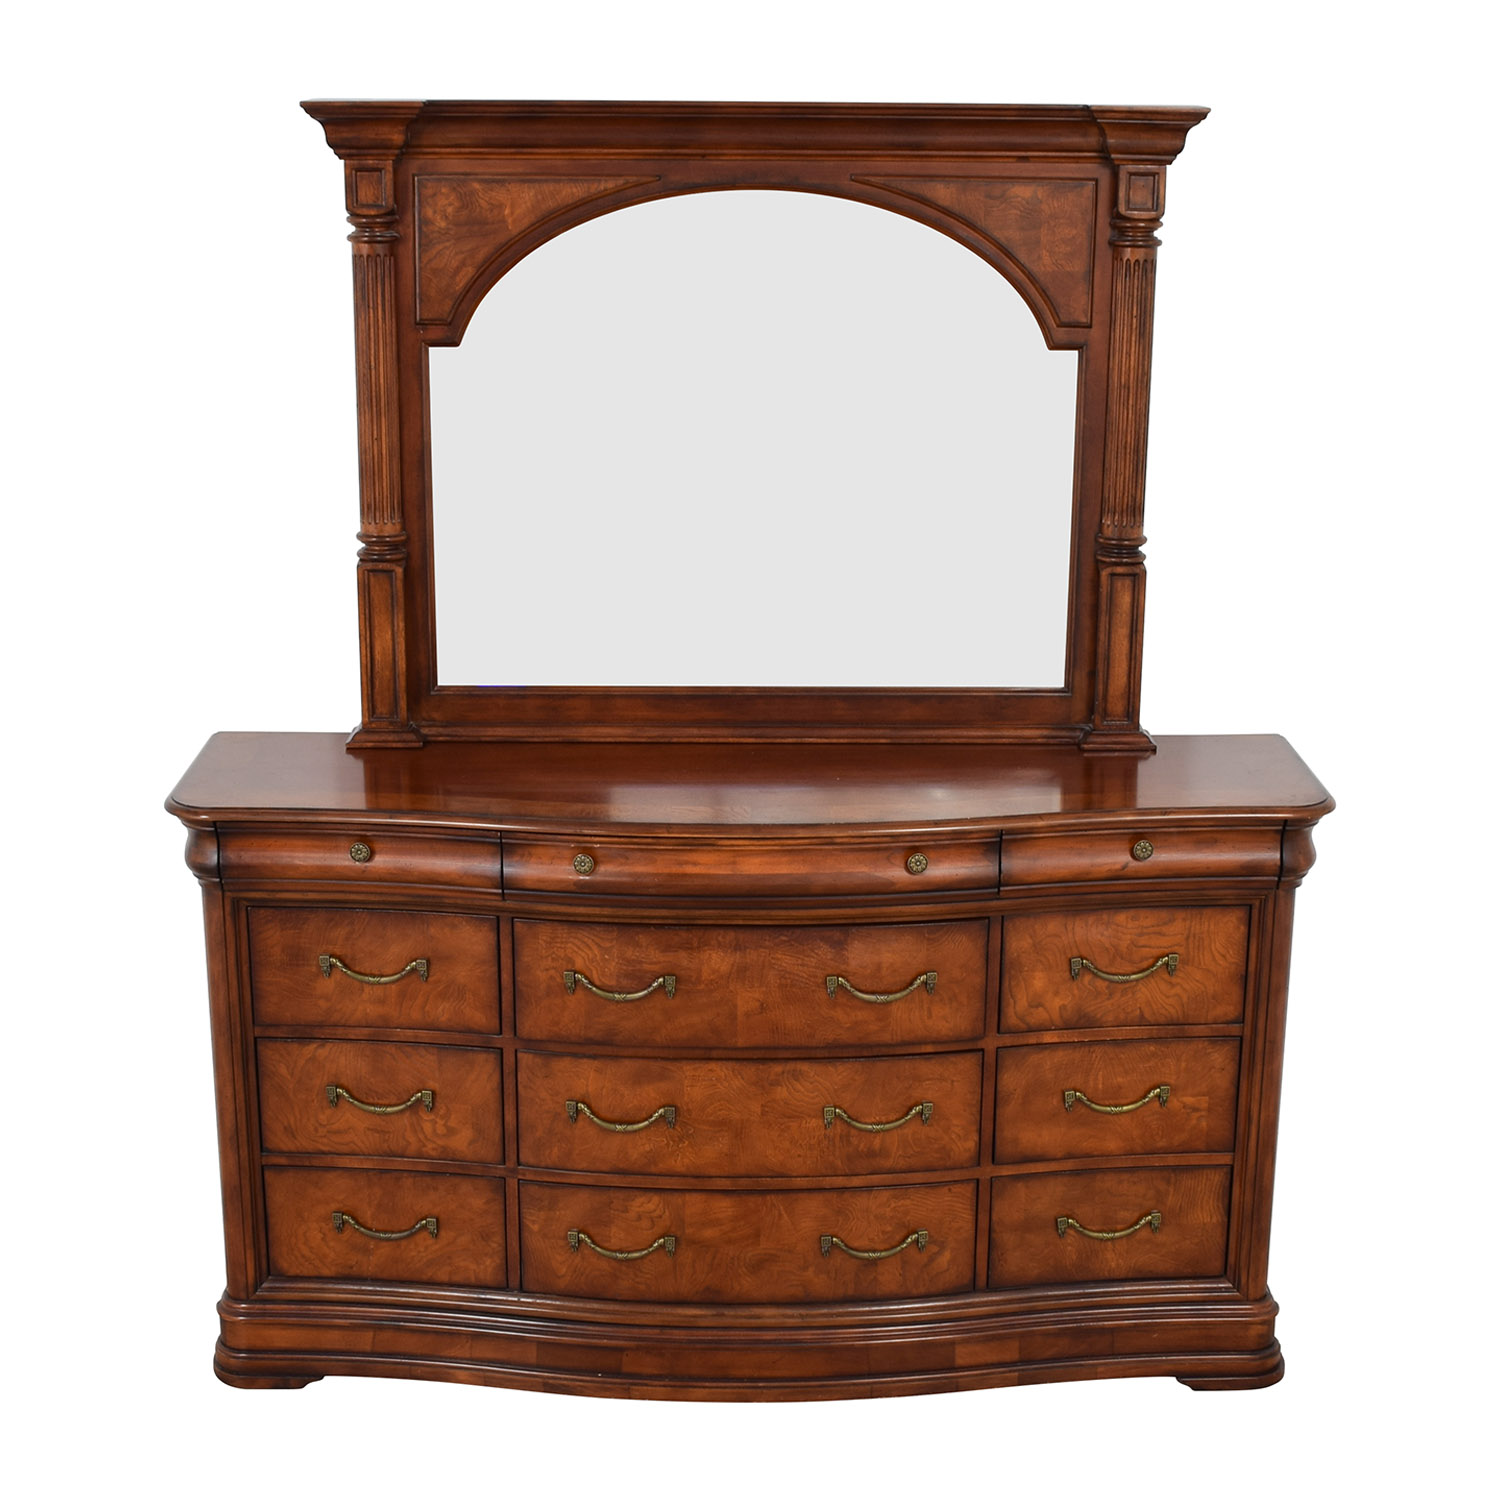 Universal Furniture Universal Furniture Triple Dresser with Mirror dimensions